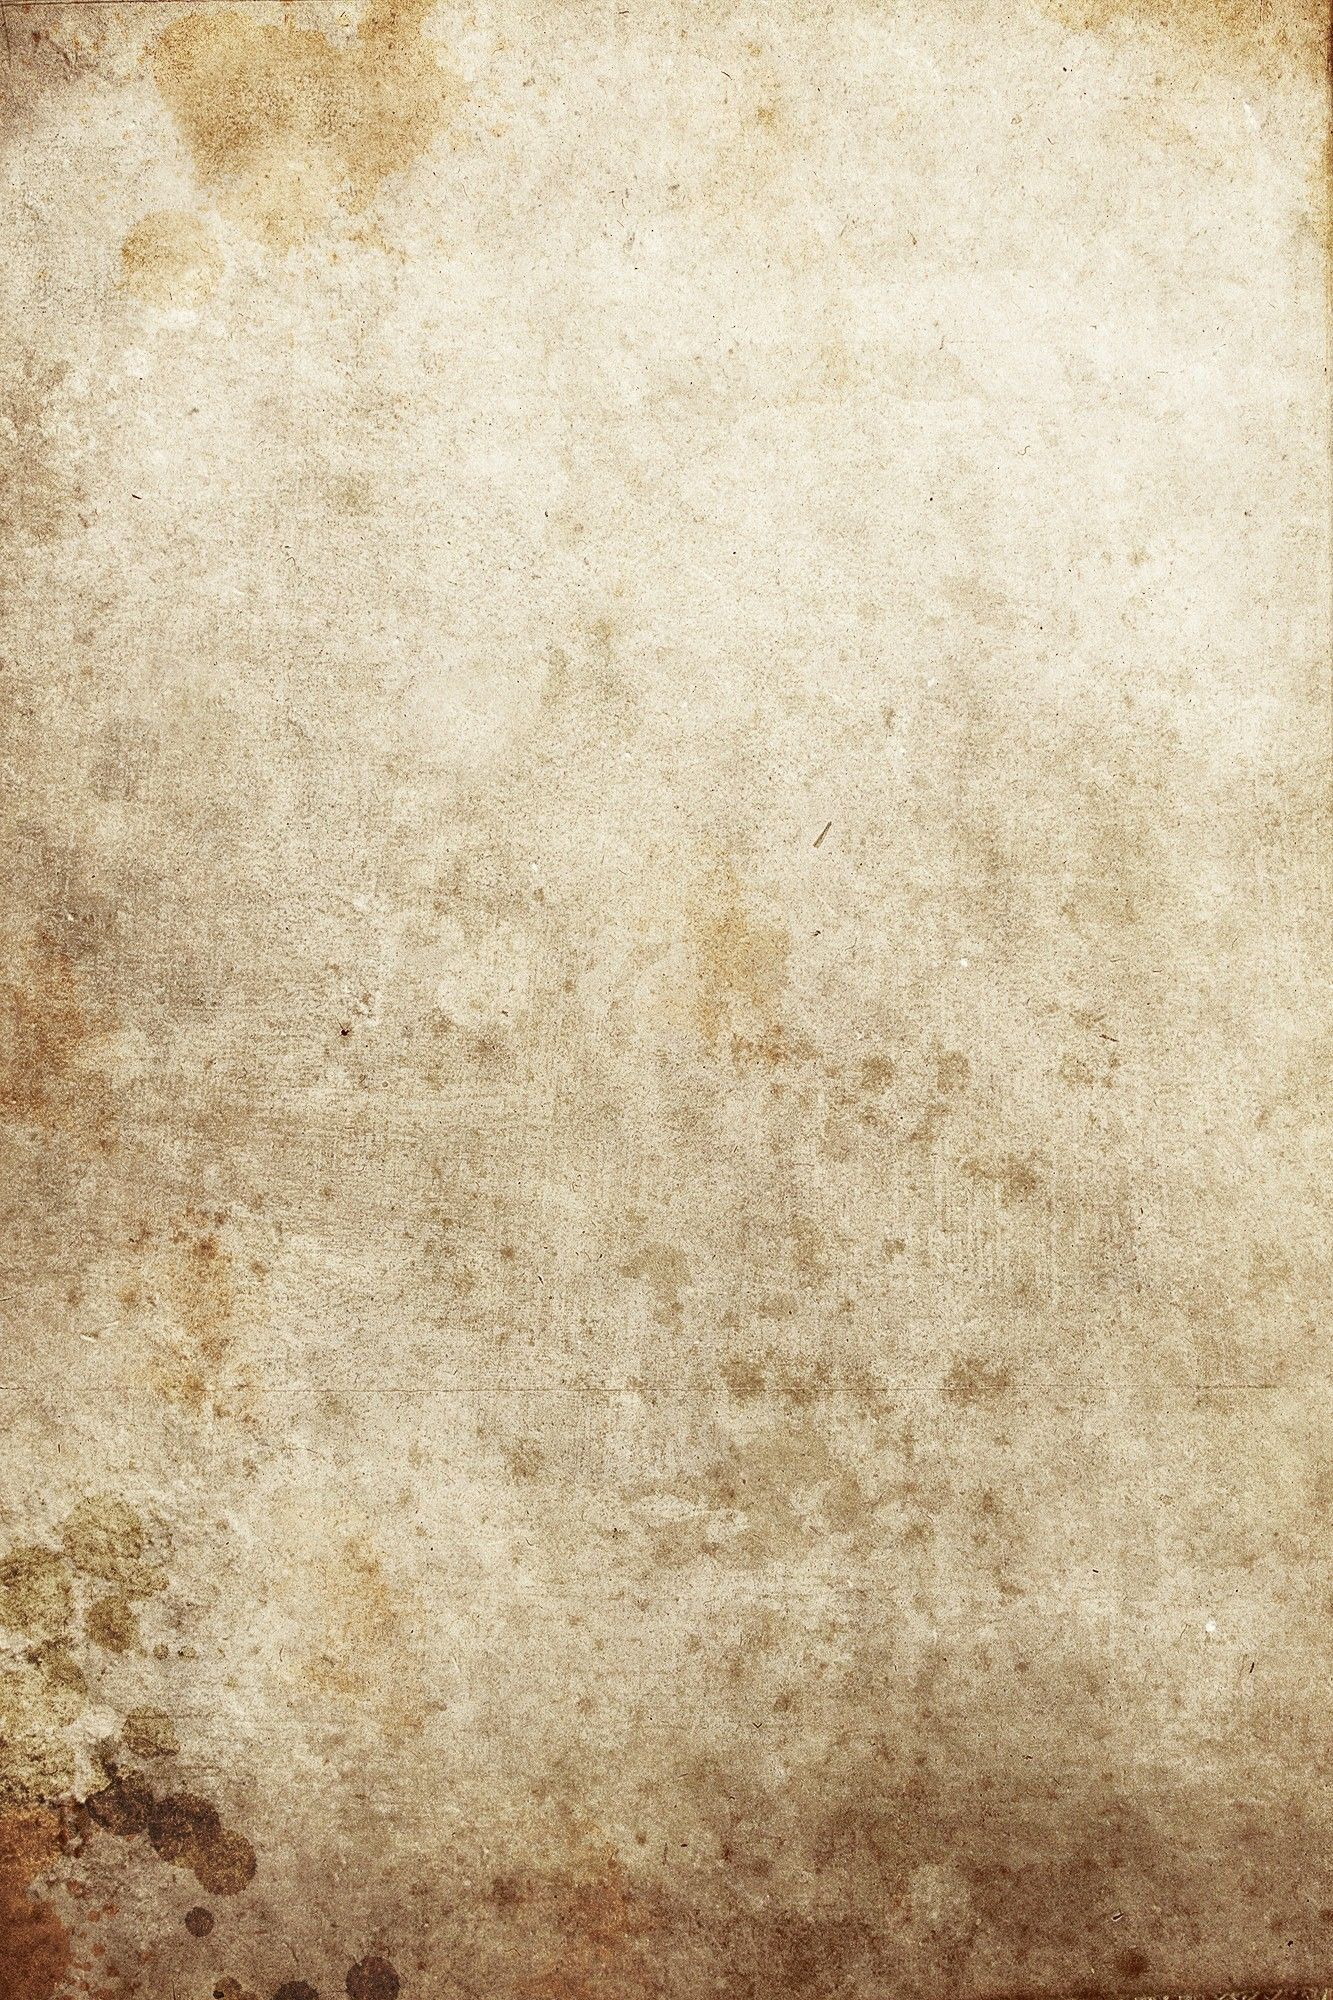 Old Paper Texture Background Free Image Old Paper Background Vintage Paper Background Vintage Paper Textures